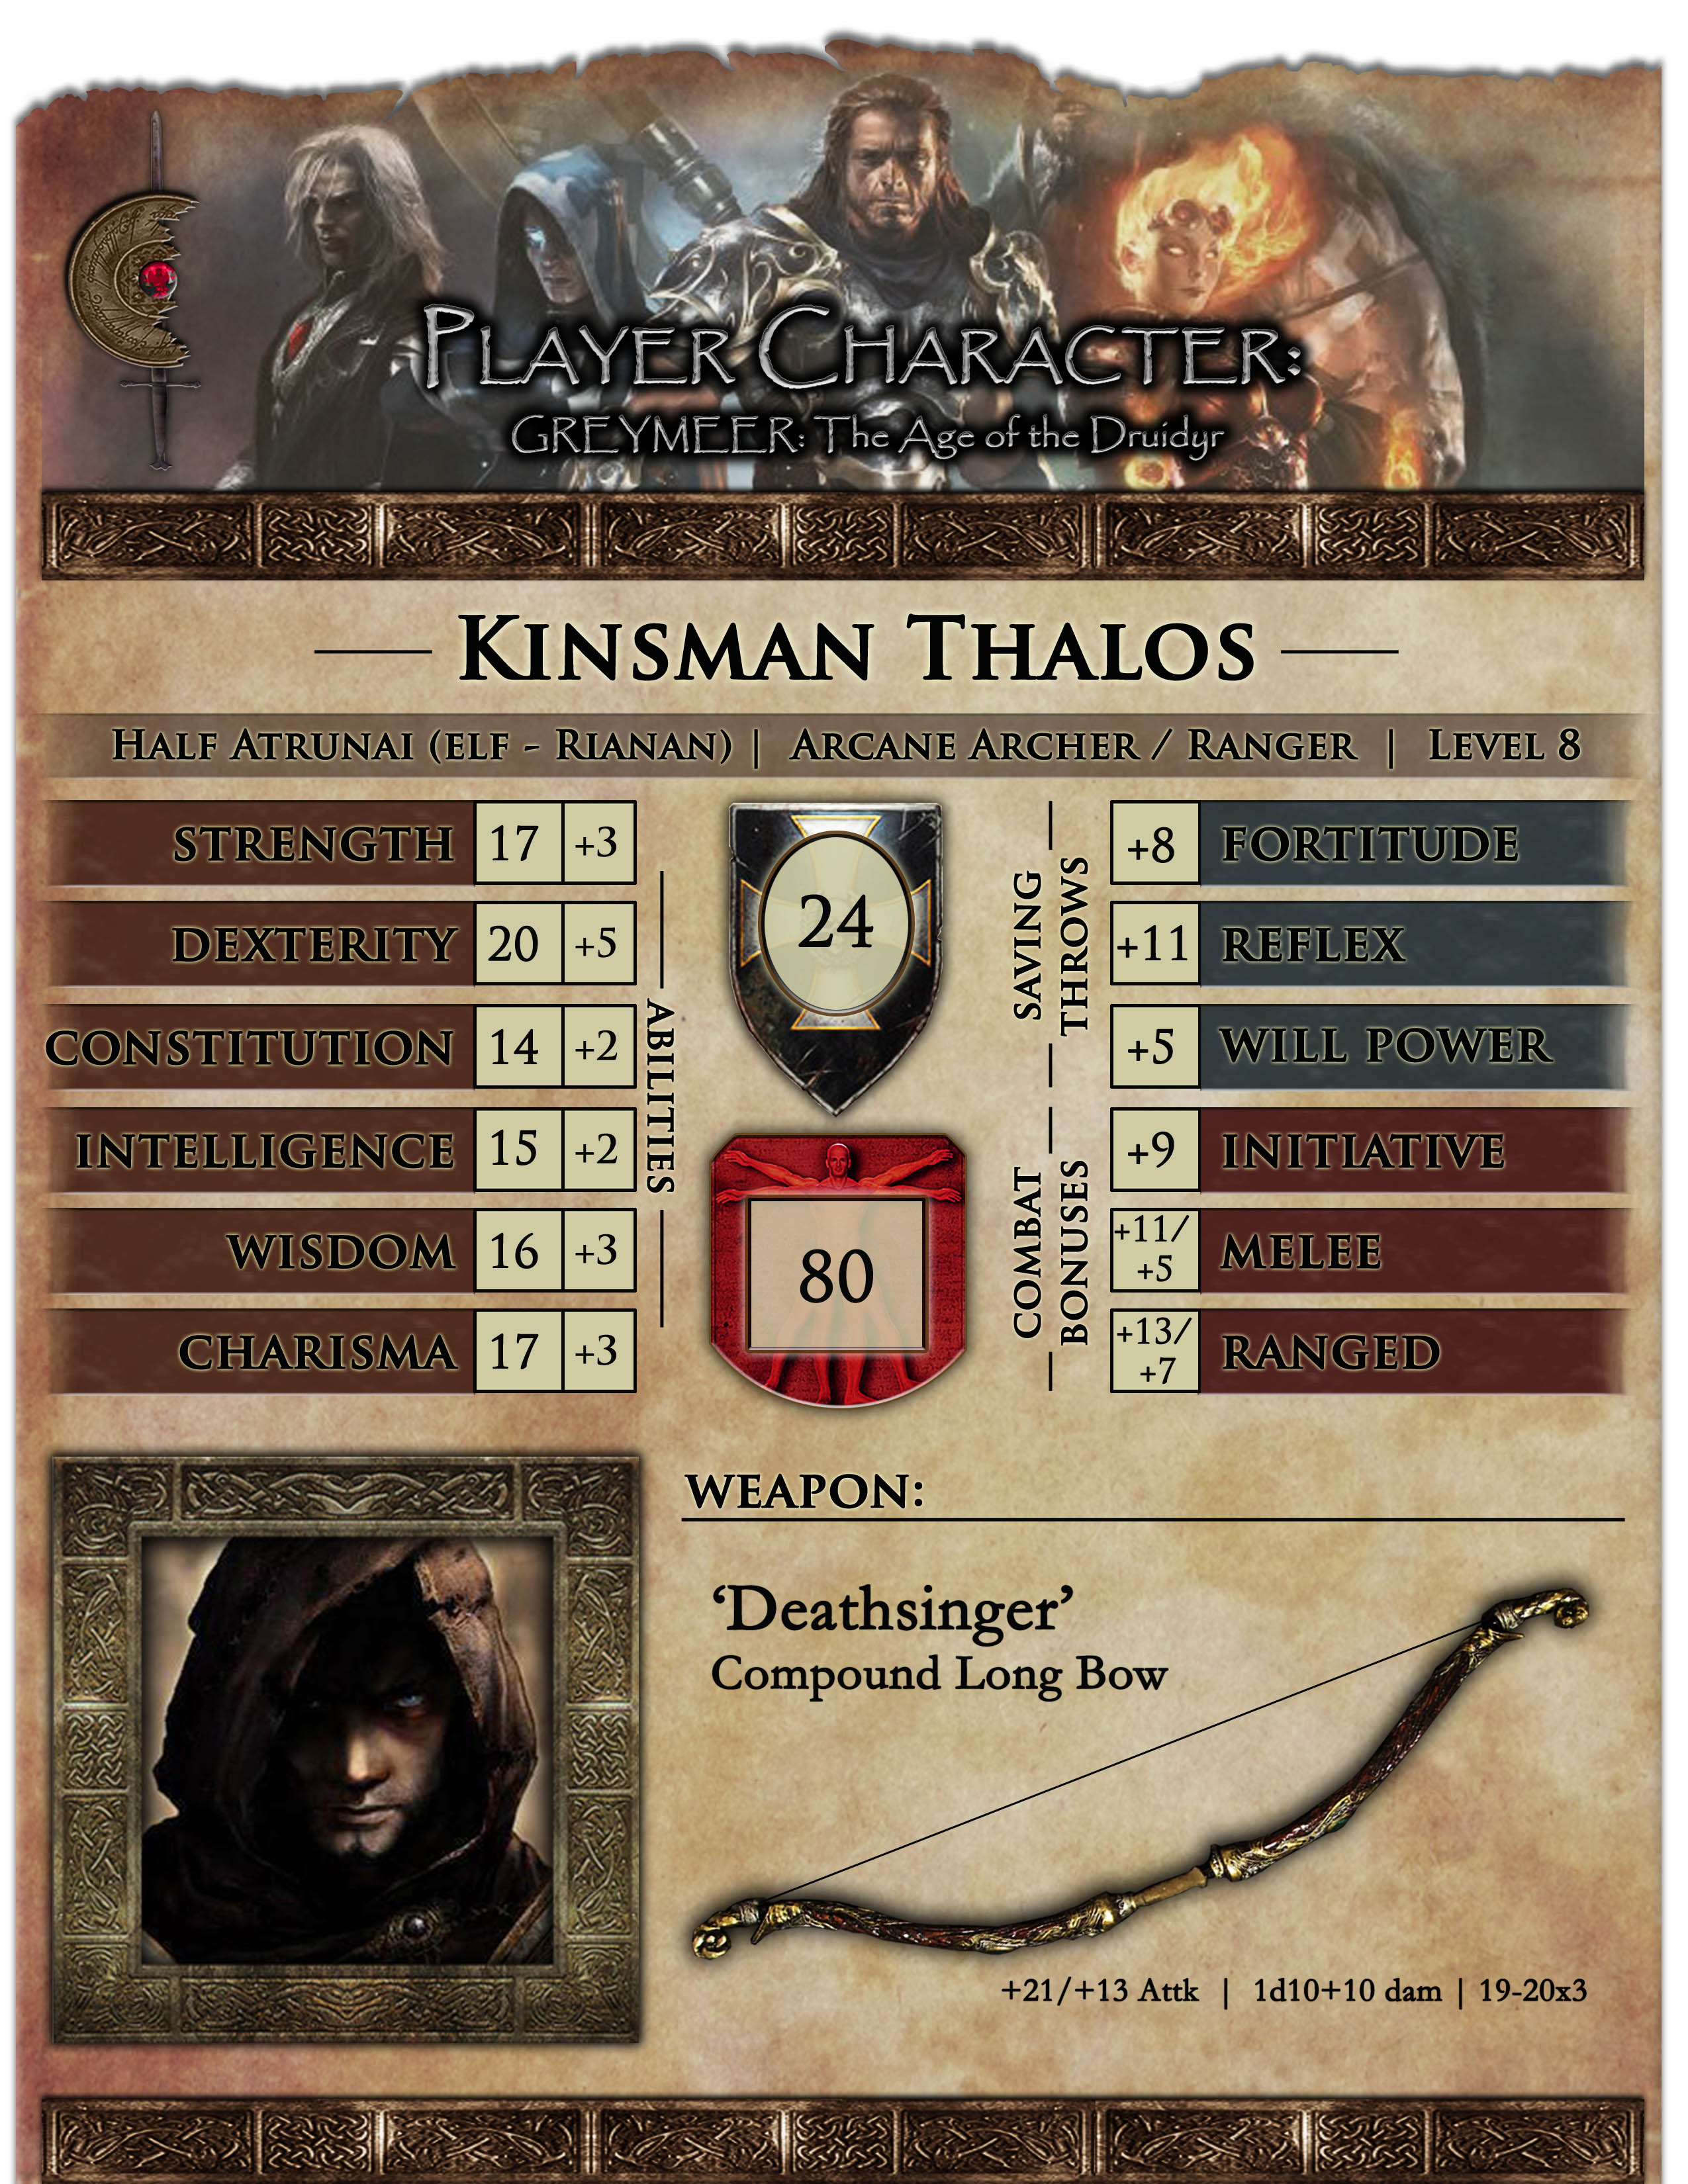 Op  character sheet   kinsman copy